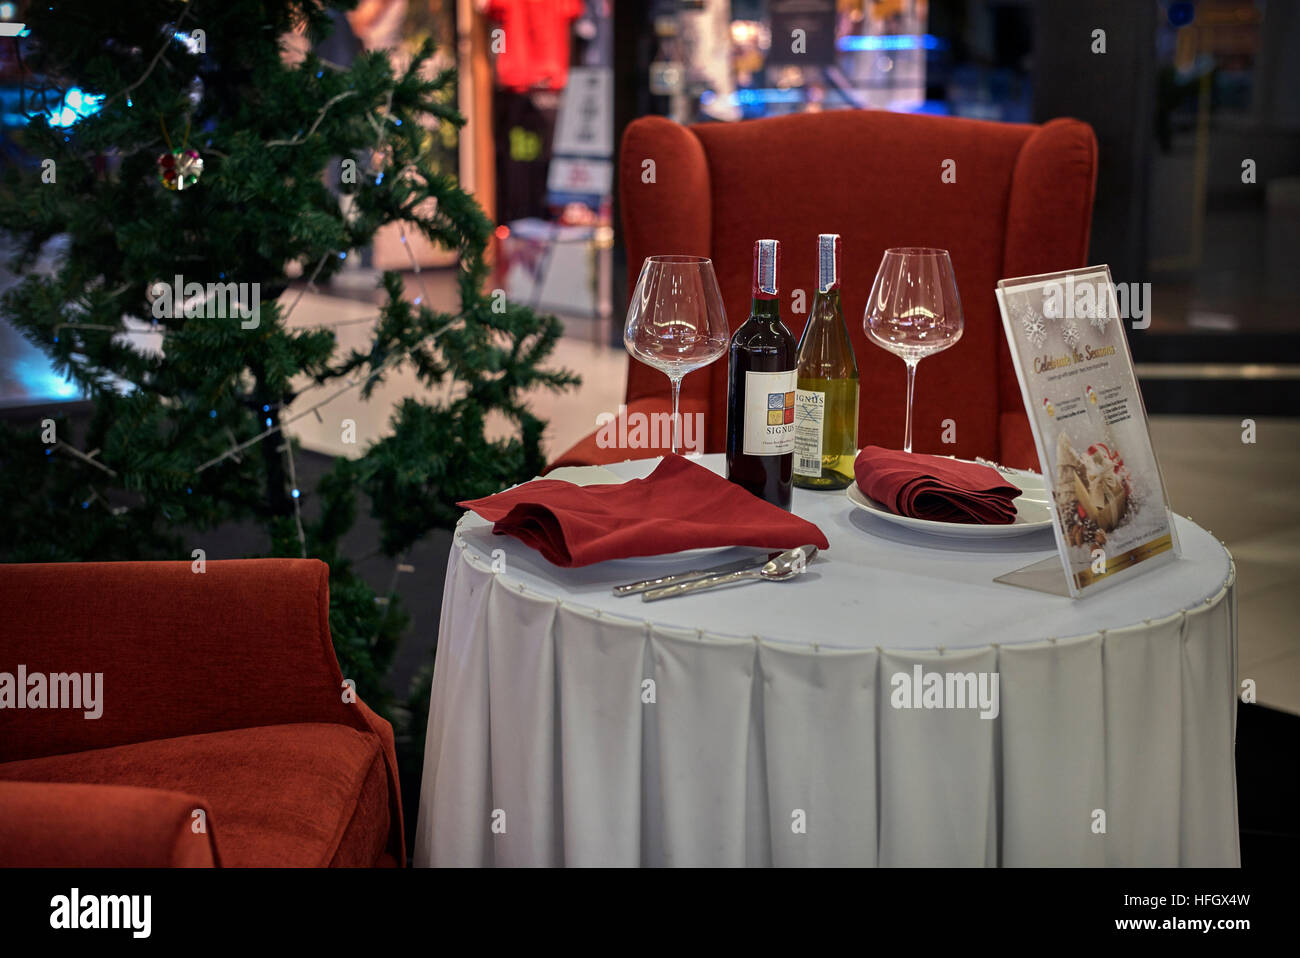 Restaurant Advertising Table Layout With Wine Bottles And Glasses - Restaurant table advertising